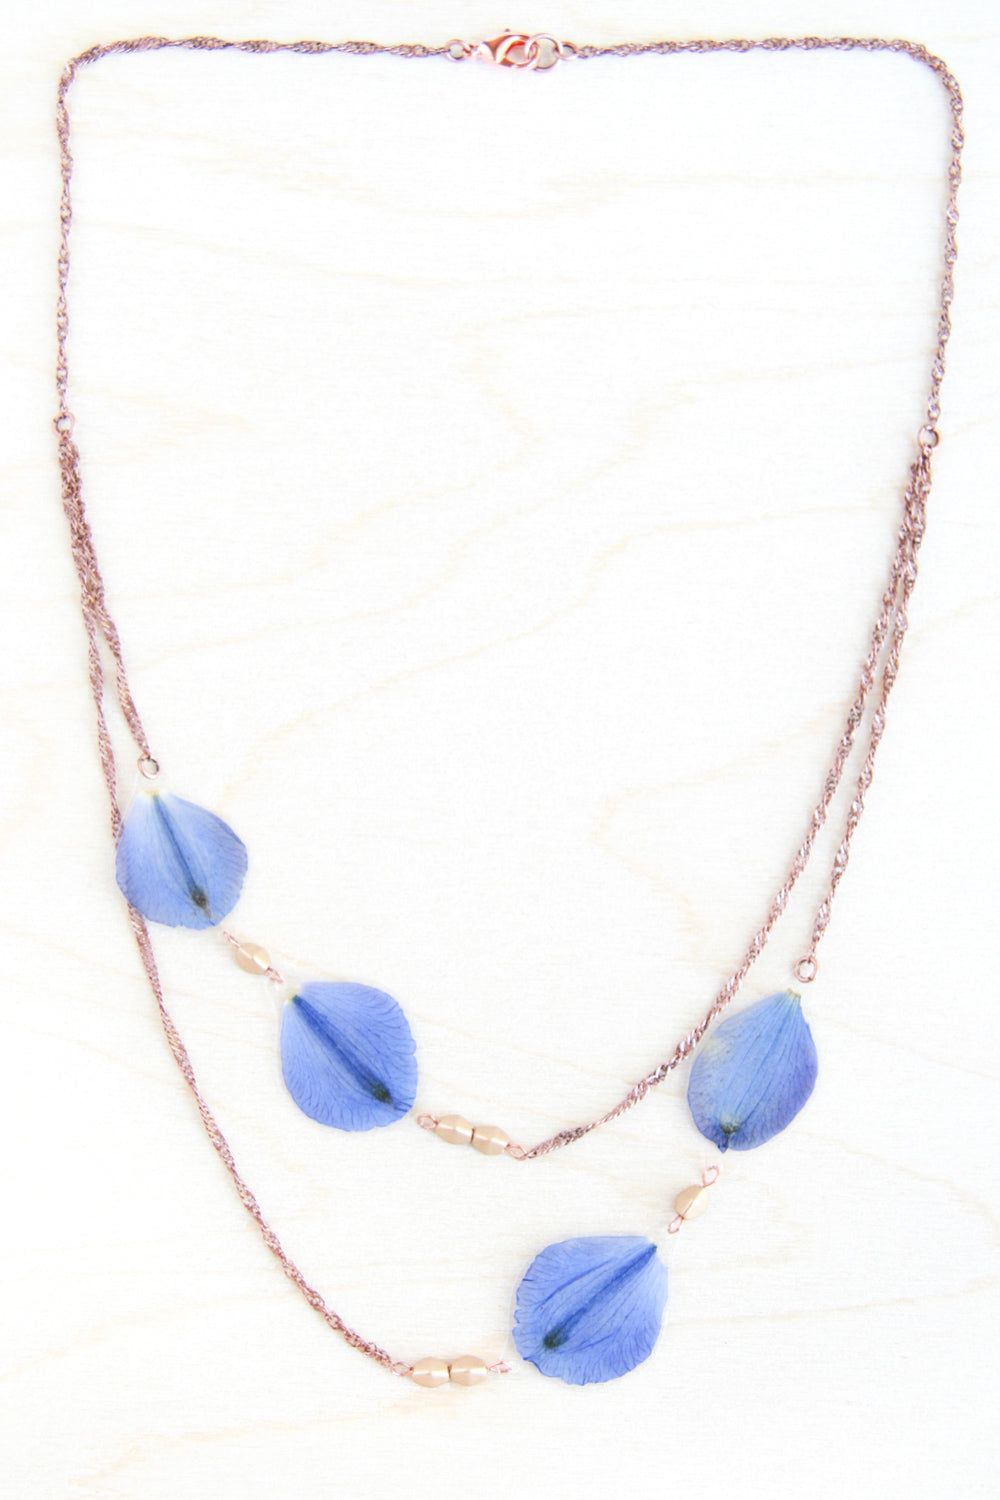 Delphinium Pressed Petal Necklace with Flax Metallic Glass Beads